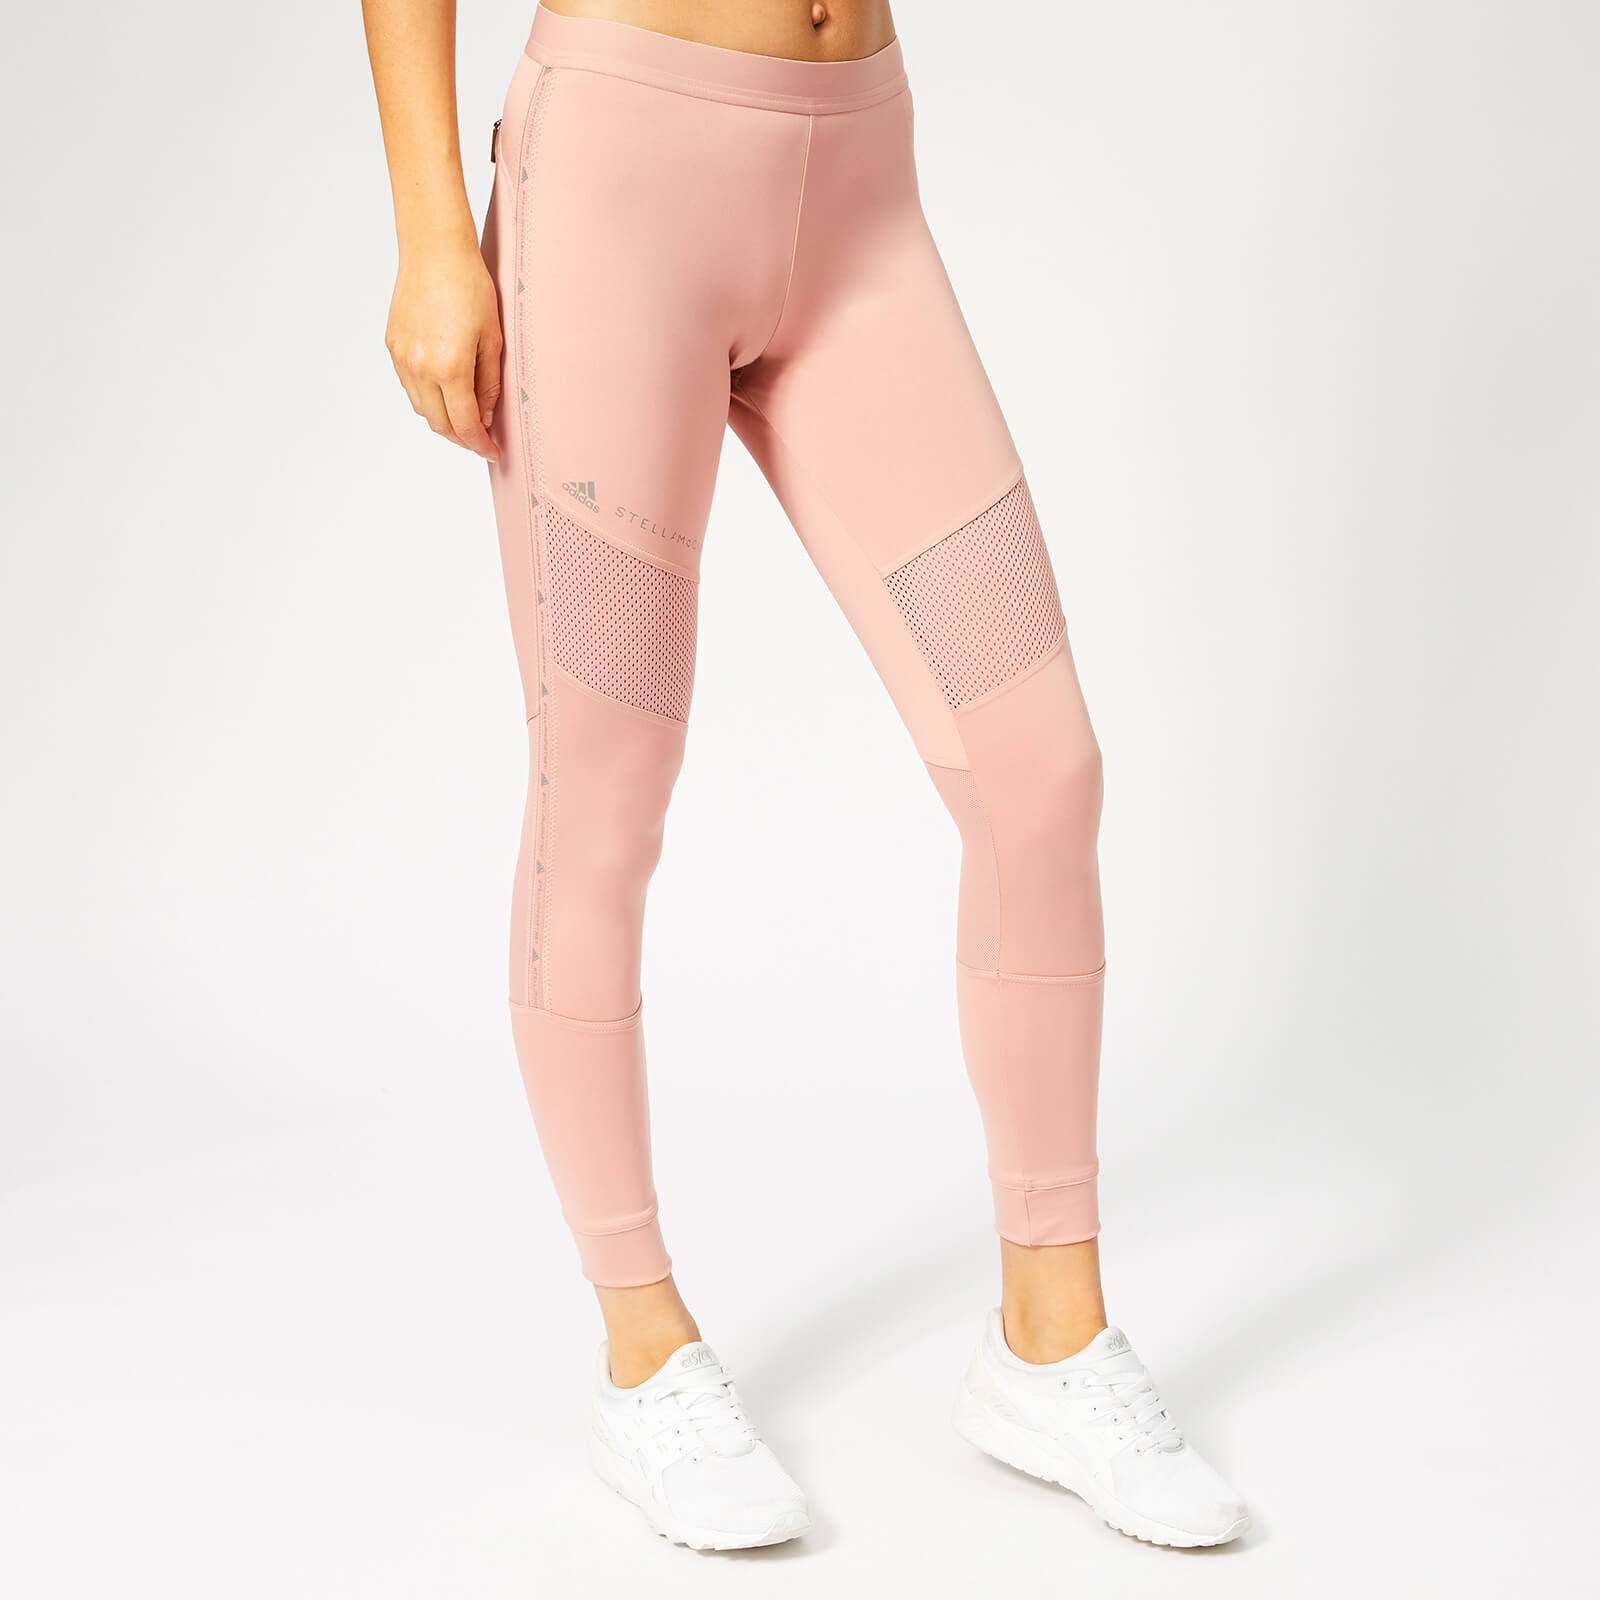 695b96333d6c8 adidas by Stella McCartney Women's Essential Tights - Band Aid Pink - Free  UK Delivery over £50